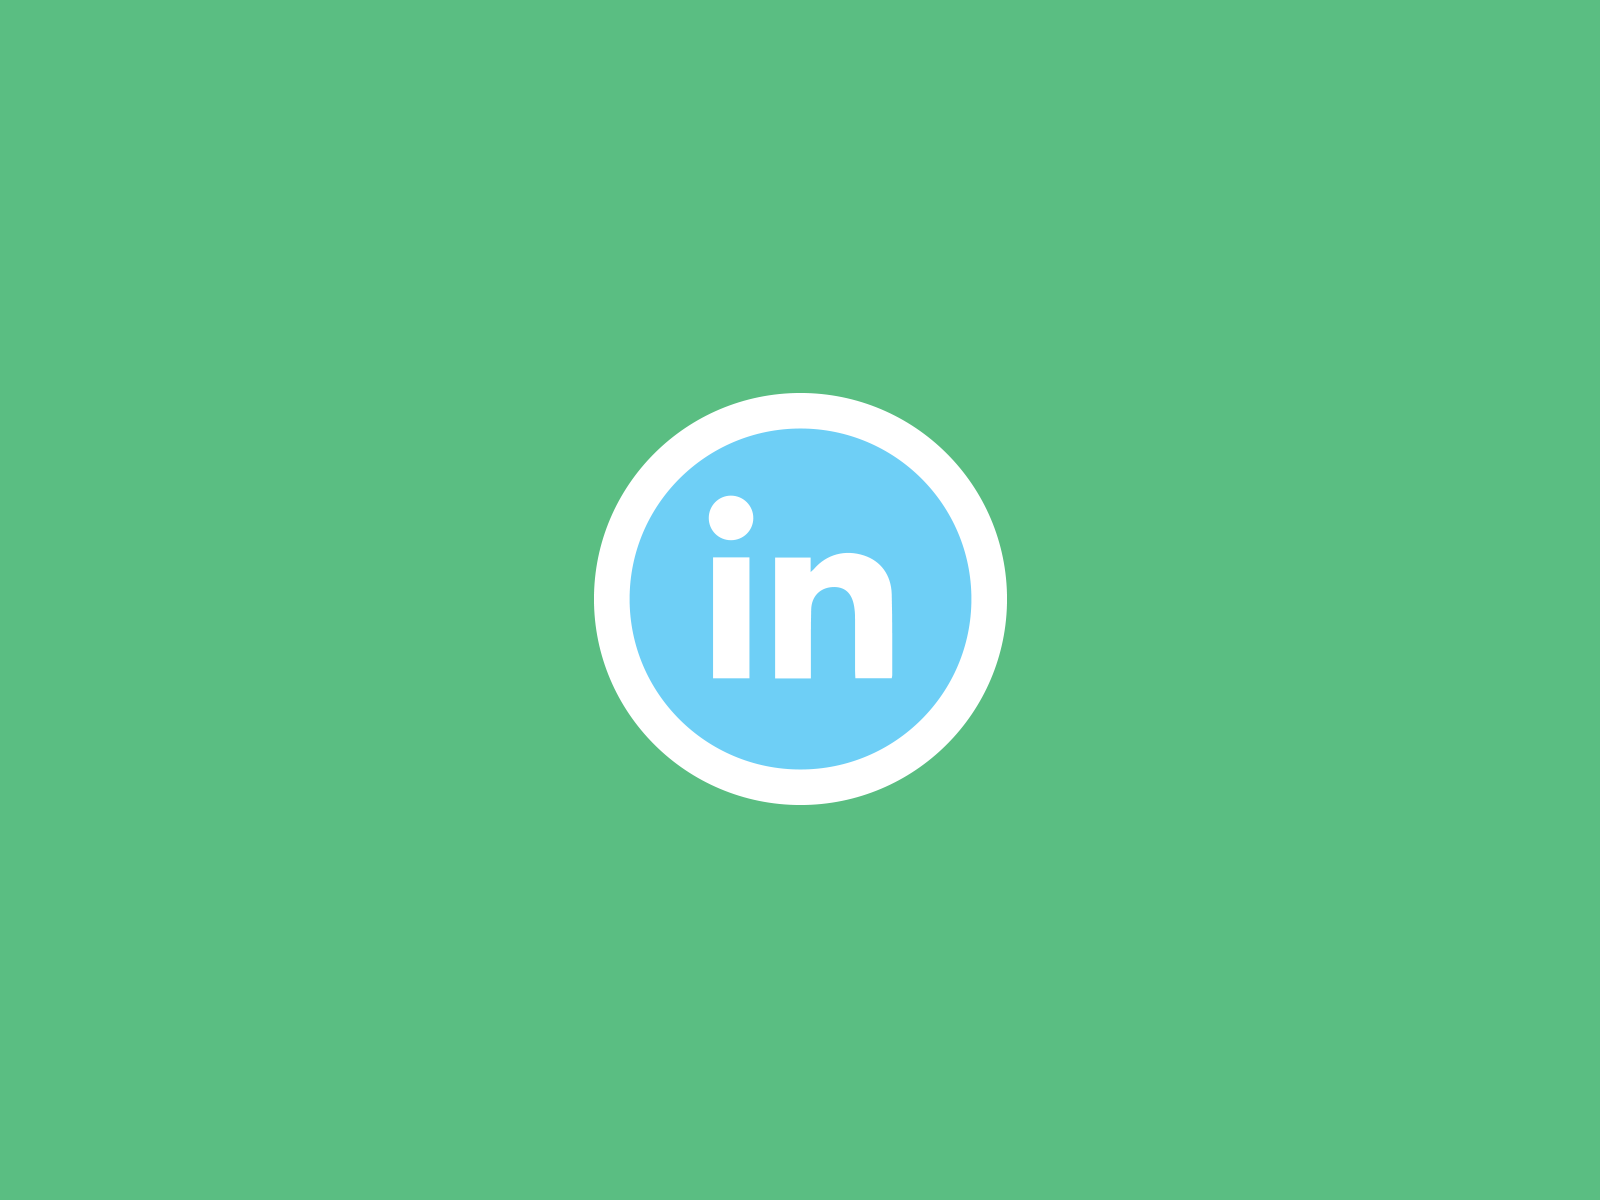 Connect with Brand Oxygen on LinkedIn